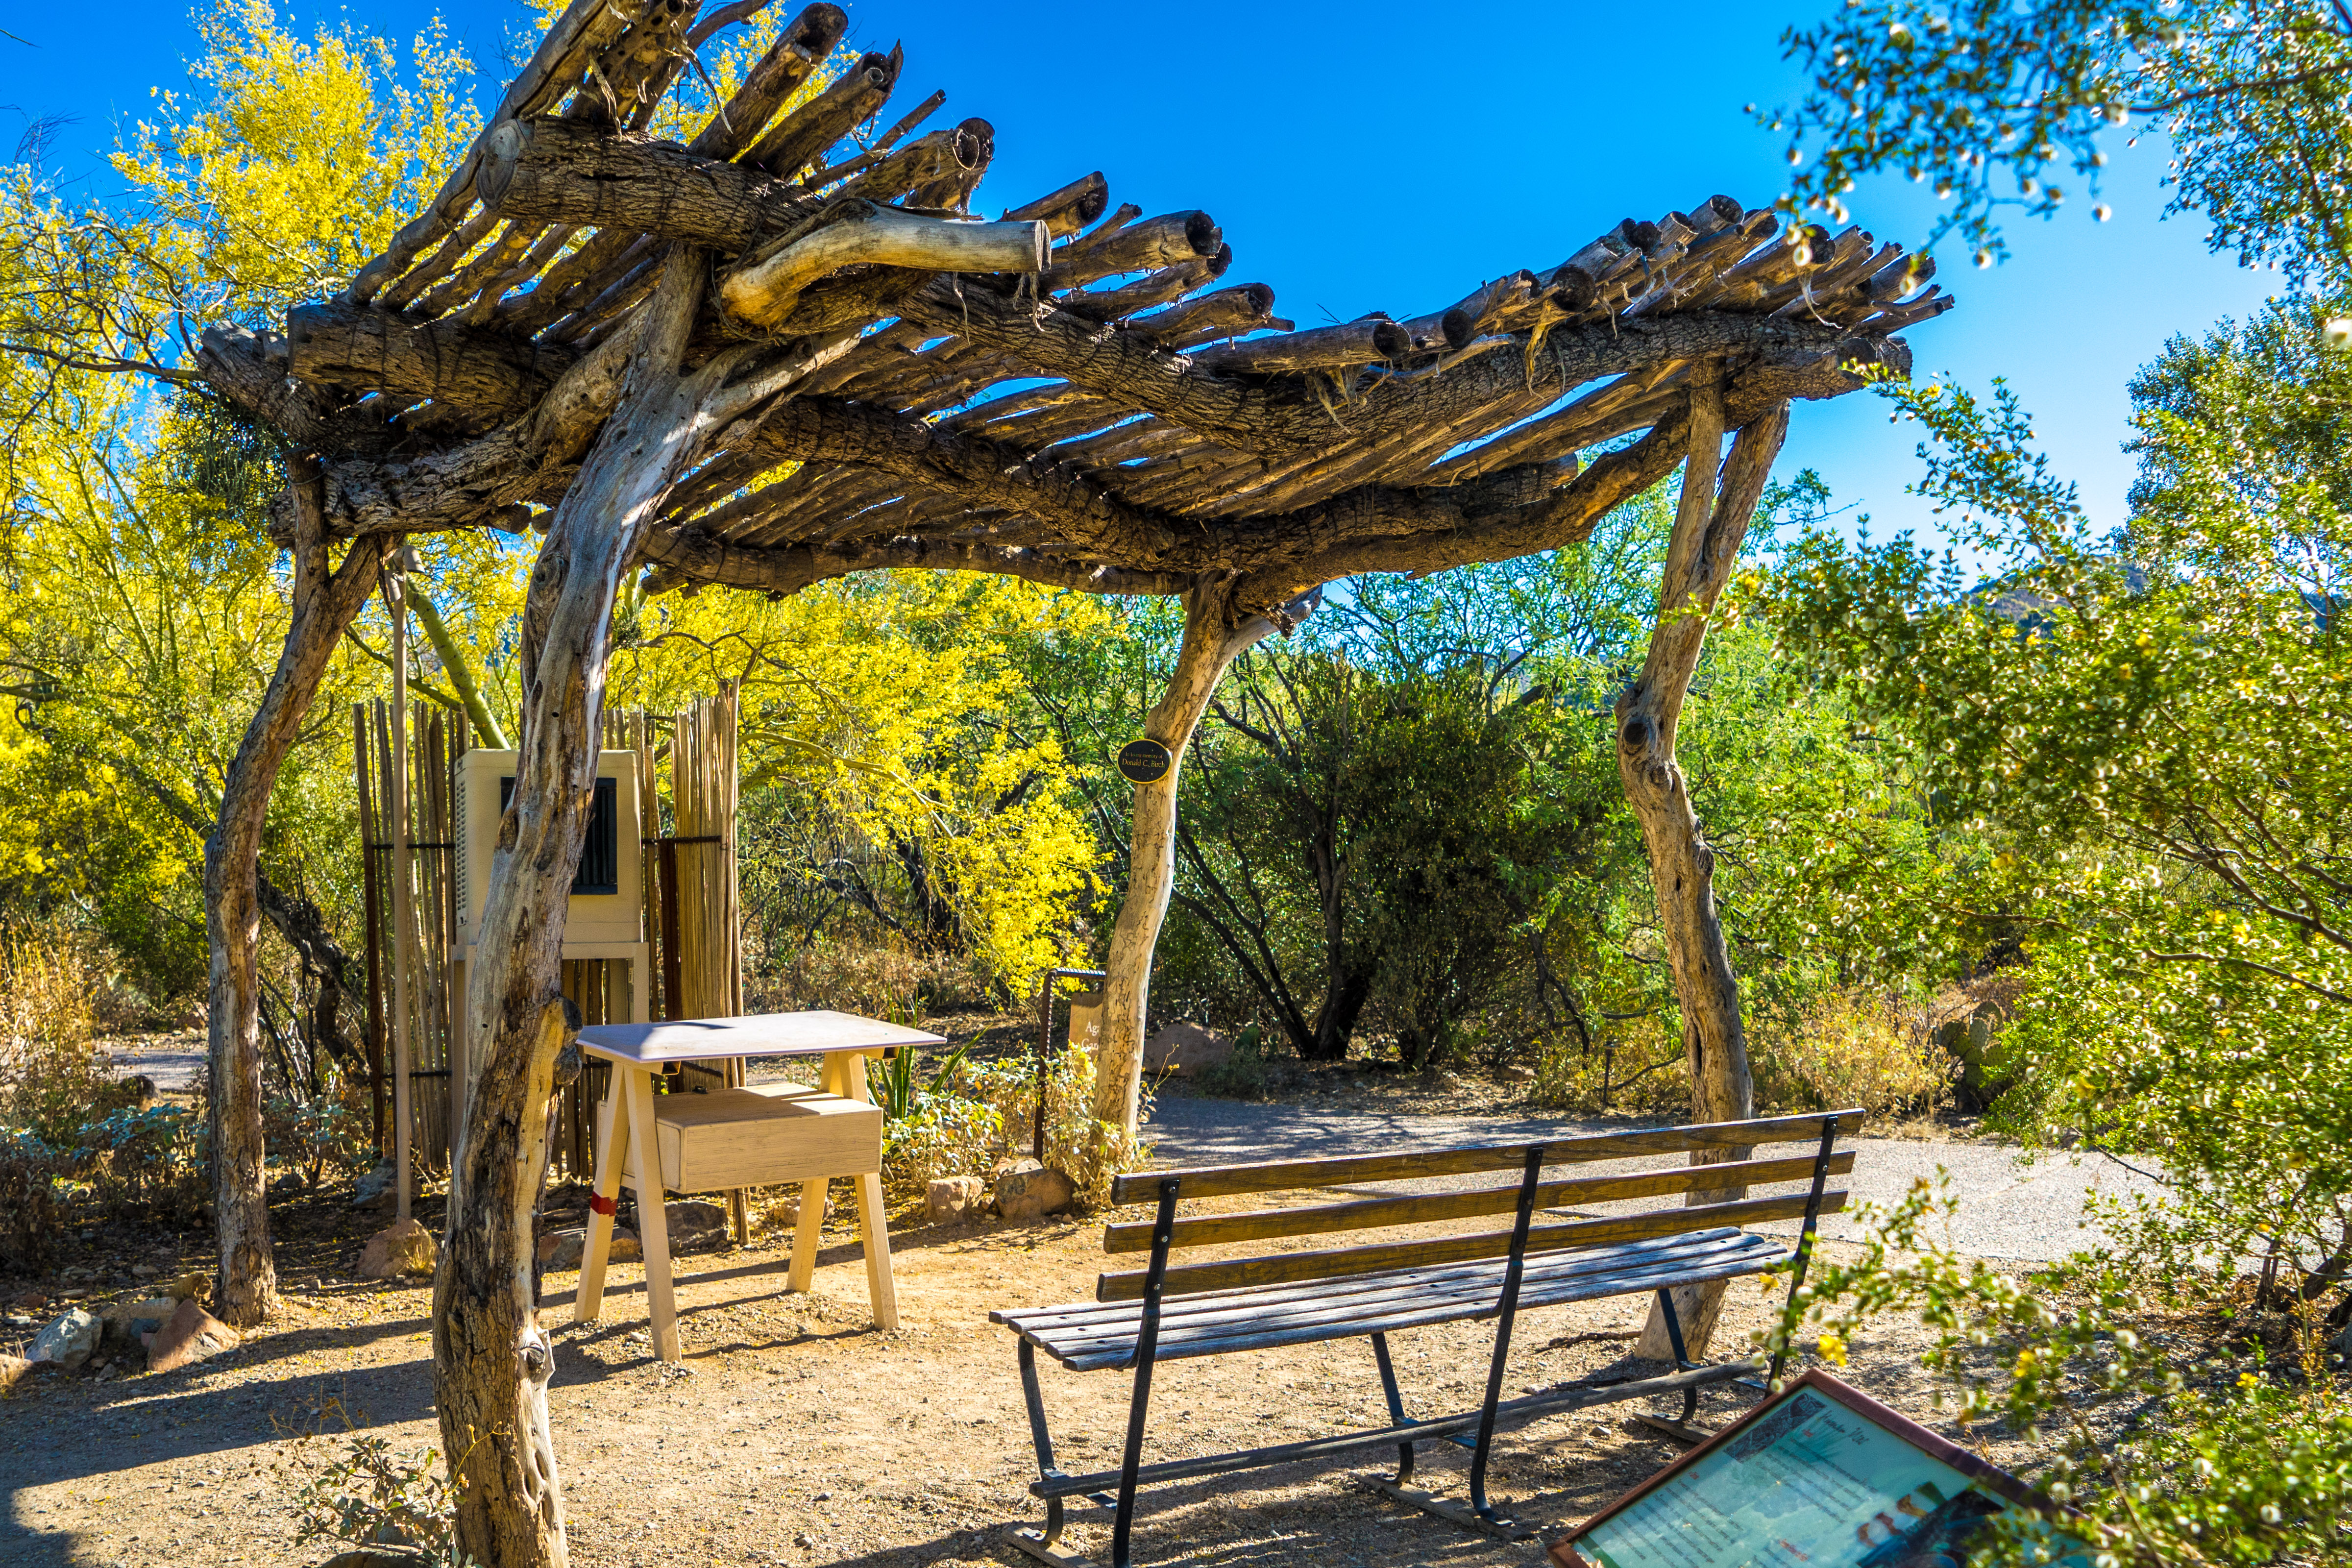 reviews for 7day new mexico amp grand circle tour from las